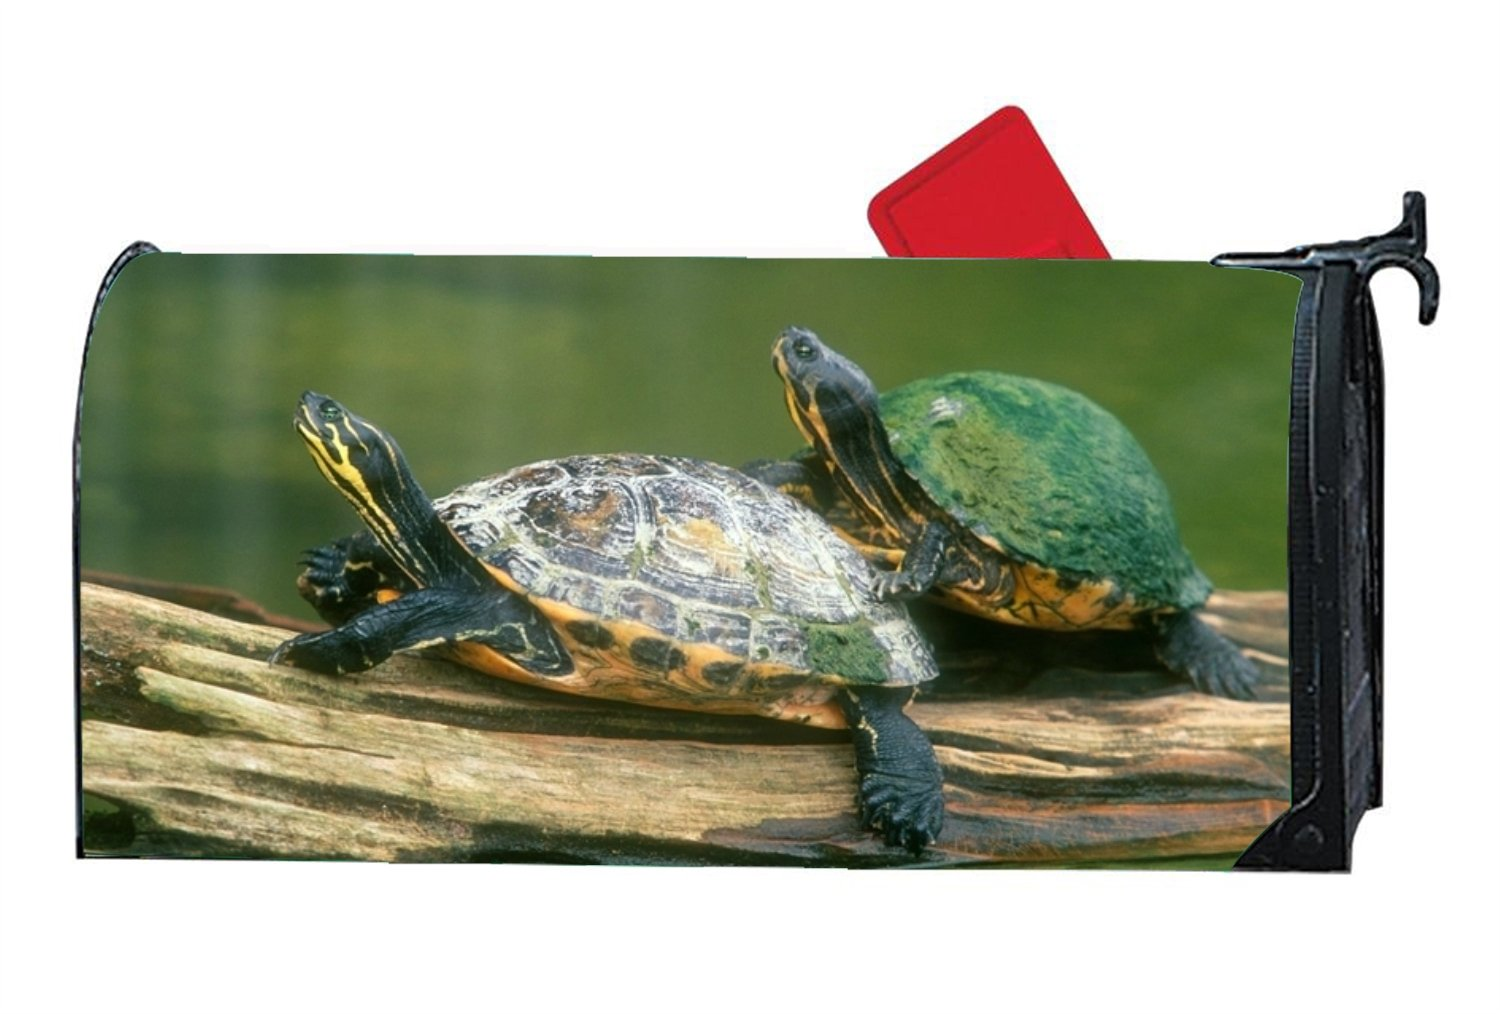 KSLIDS Unique Mailbox Makeover Turtles Mailbox Covers Garden,Outdoor,Yard Magnetic